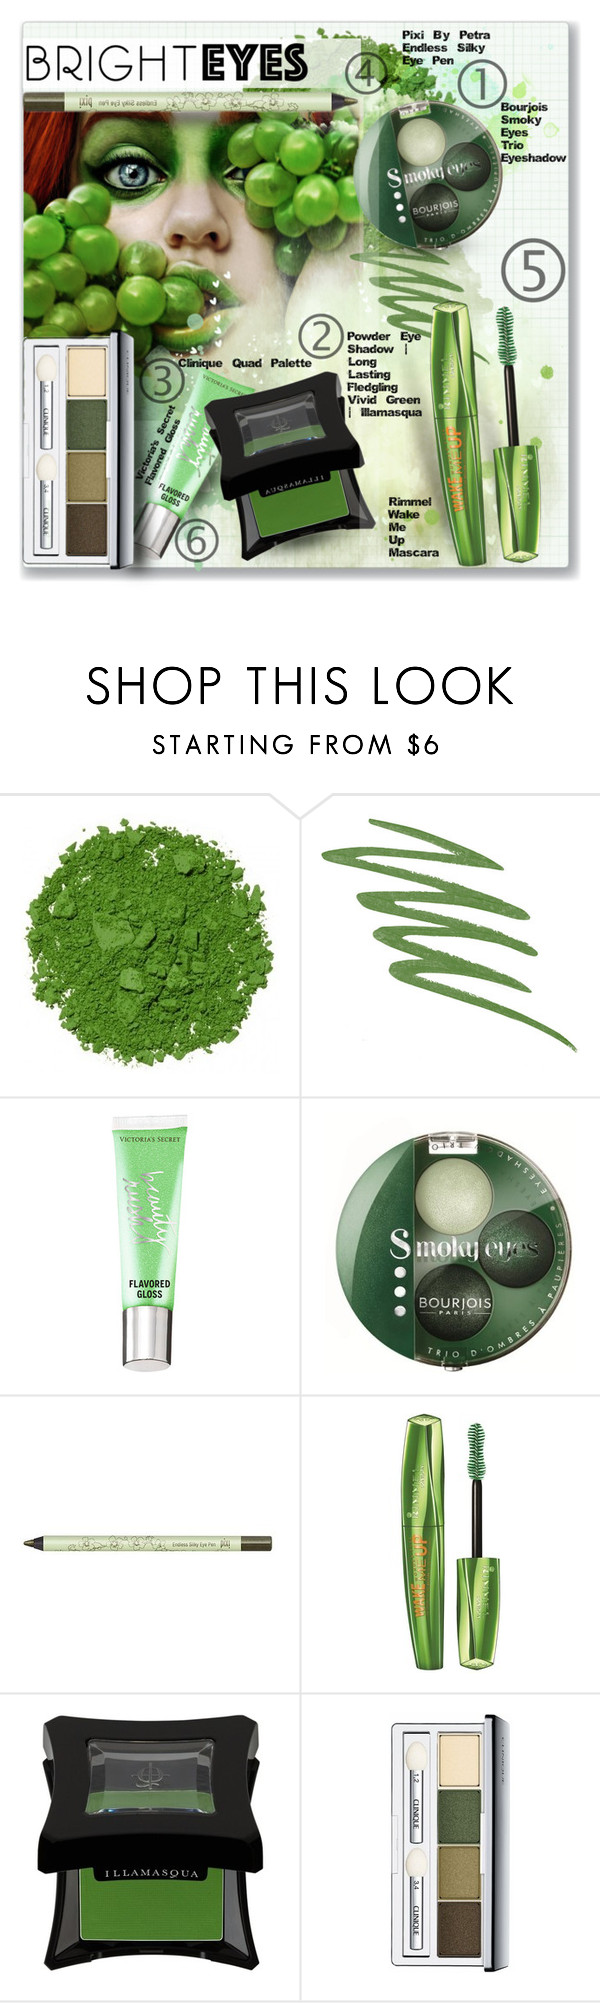 """""""BRIGHT EYES #3"""" by fashionismyprofession8 ❤ liked on Polyvore featuring beauty, Illamasqua, NARS Cosmetics, Victoria's Secret, Bourjois, Pixi, Rimmel, Clinique and brighteyes"""